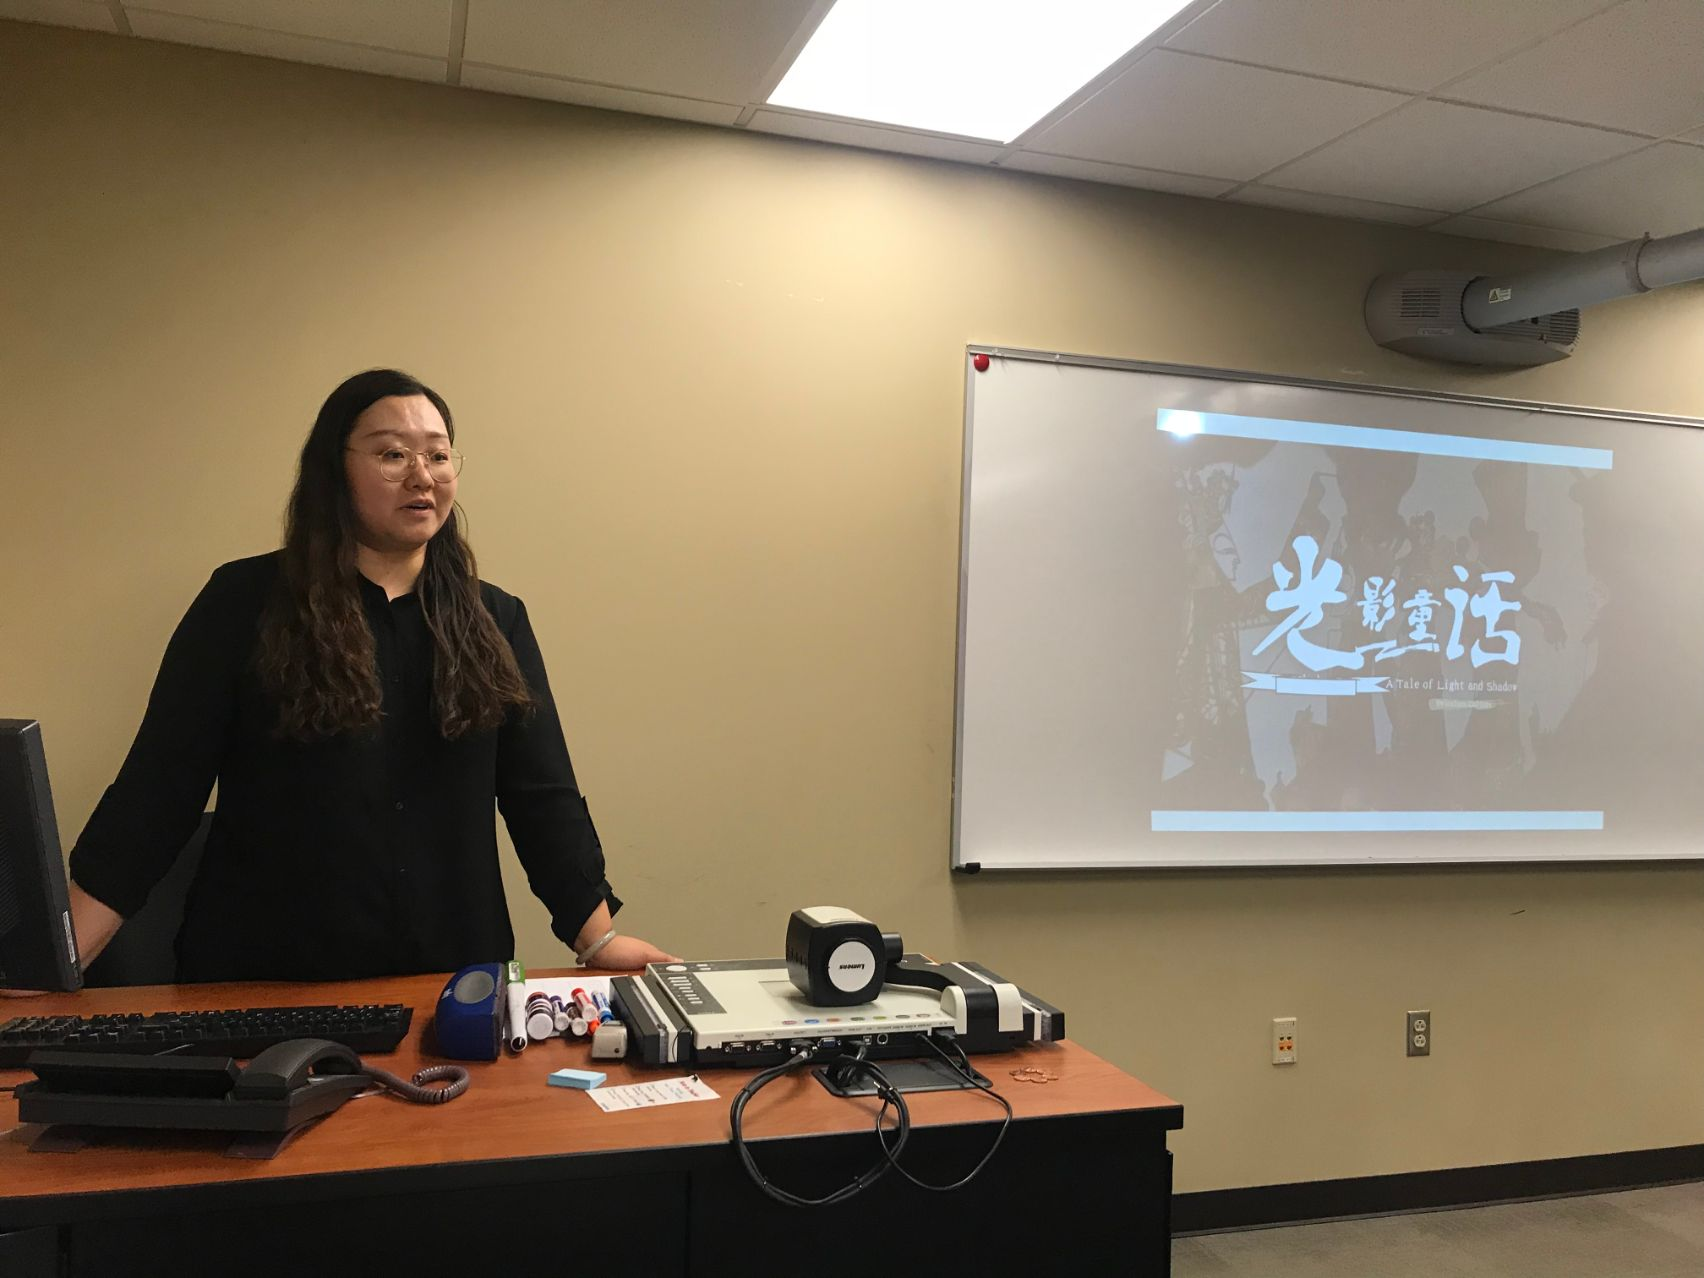 Visiting Scholar, Yunchu Zhang gives the students a history of Chinese puppetry and plays them a video.